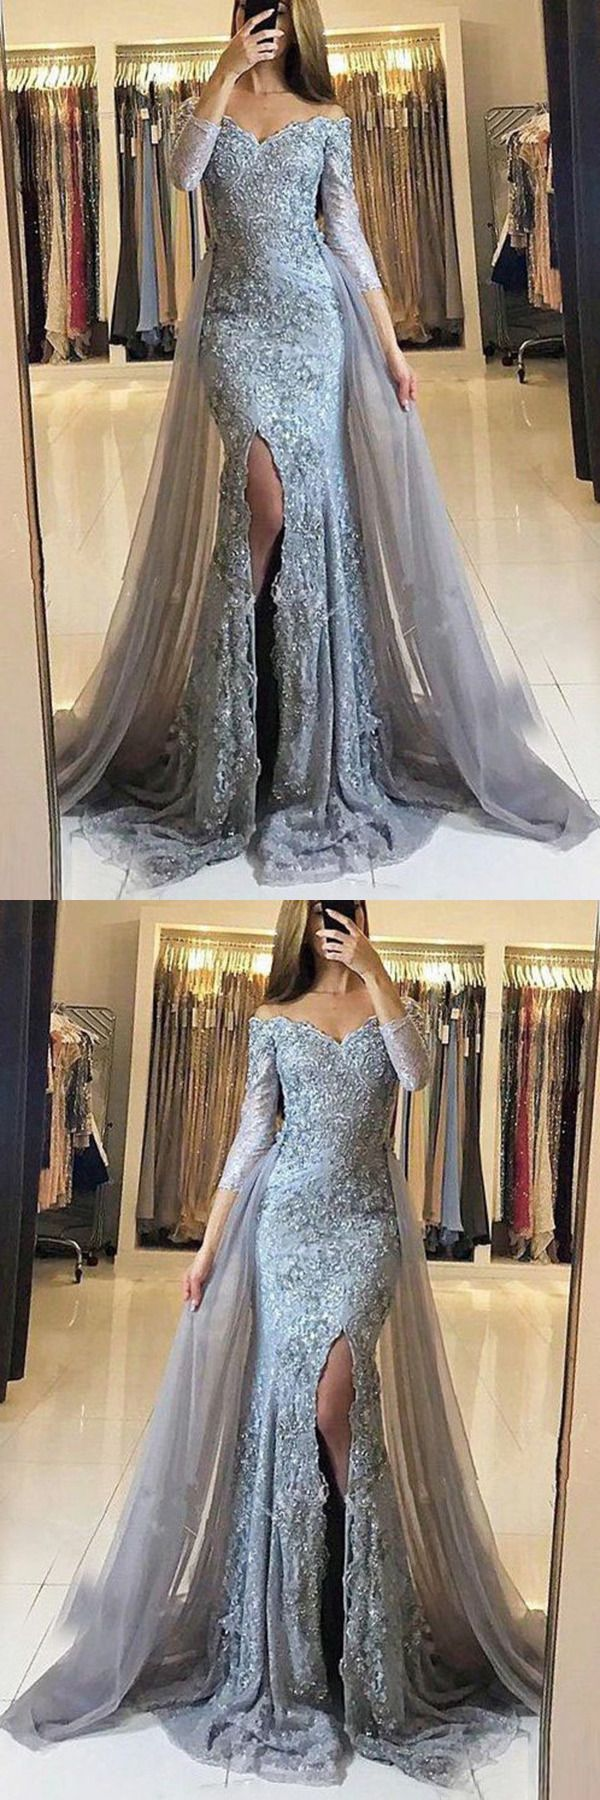 2019 Long Sleeves Off The Shoulder Tulle With Applique ...